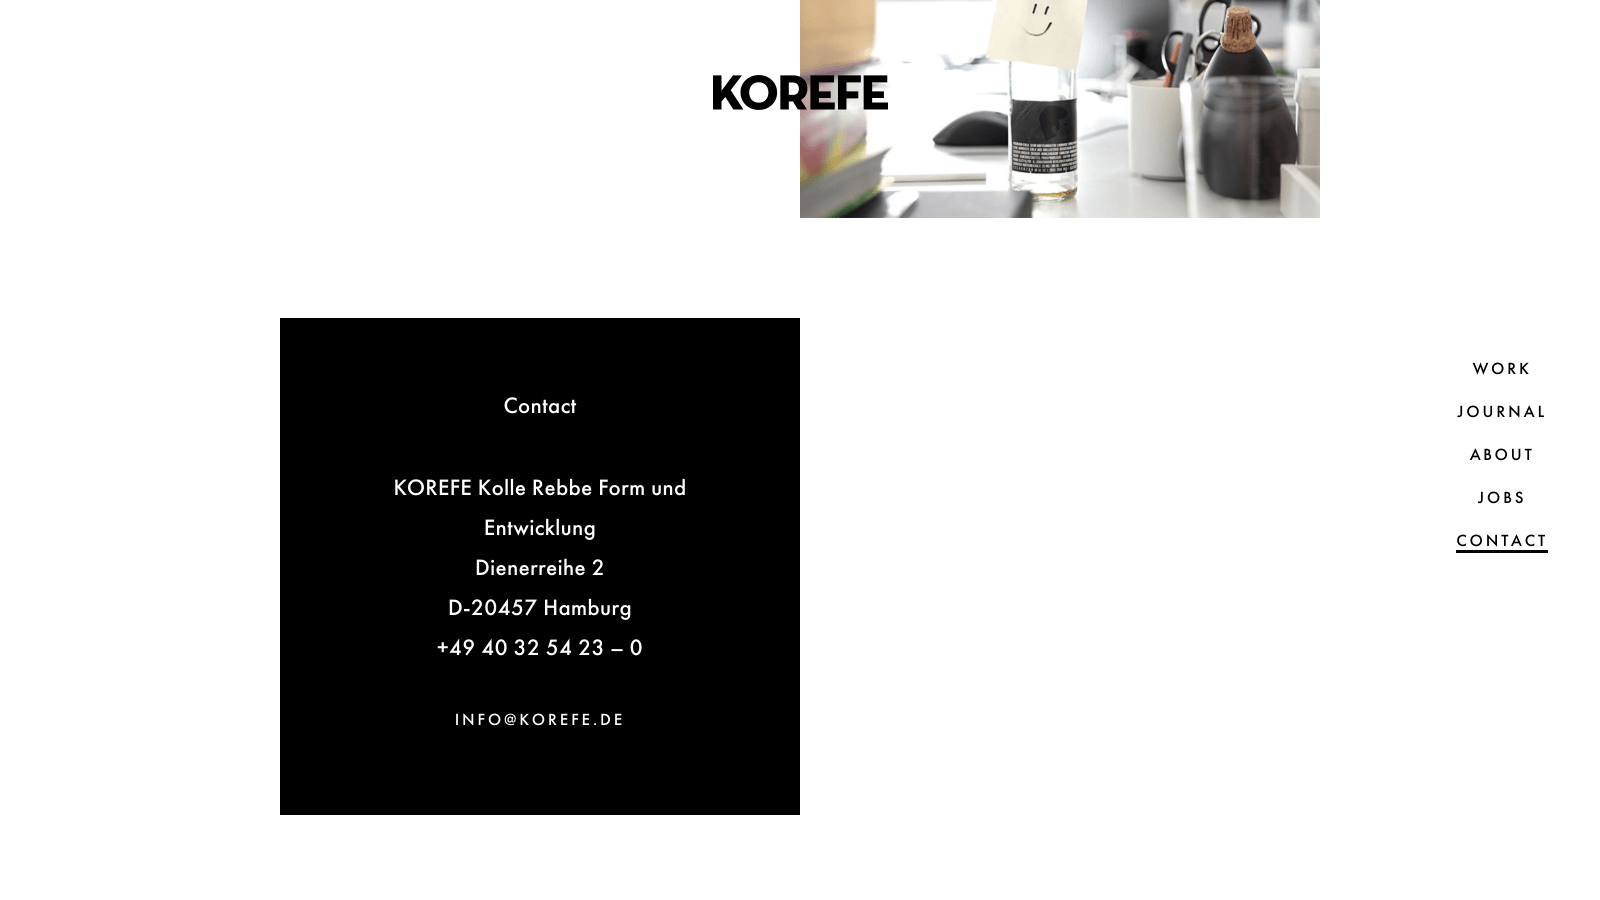 screenshot-korefe.de-2017-08-19-16-04-07